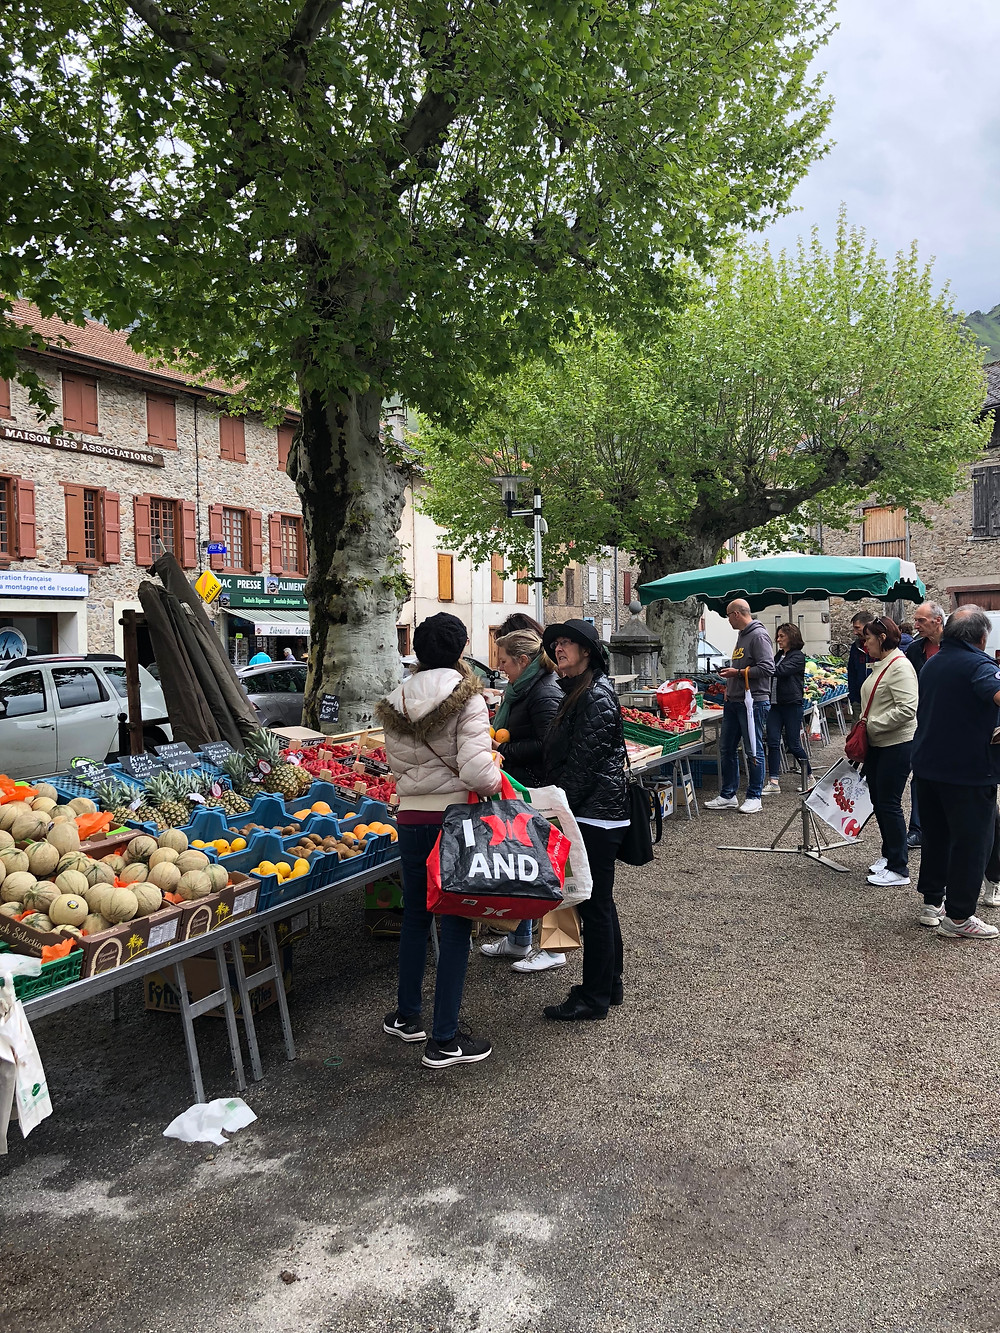 travel, adventure, chateau, France, local village, open market, mid Pyrenees, vacation, experiences